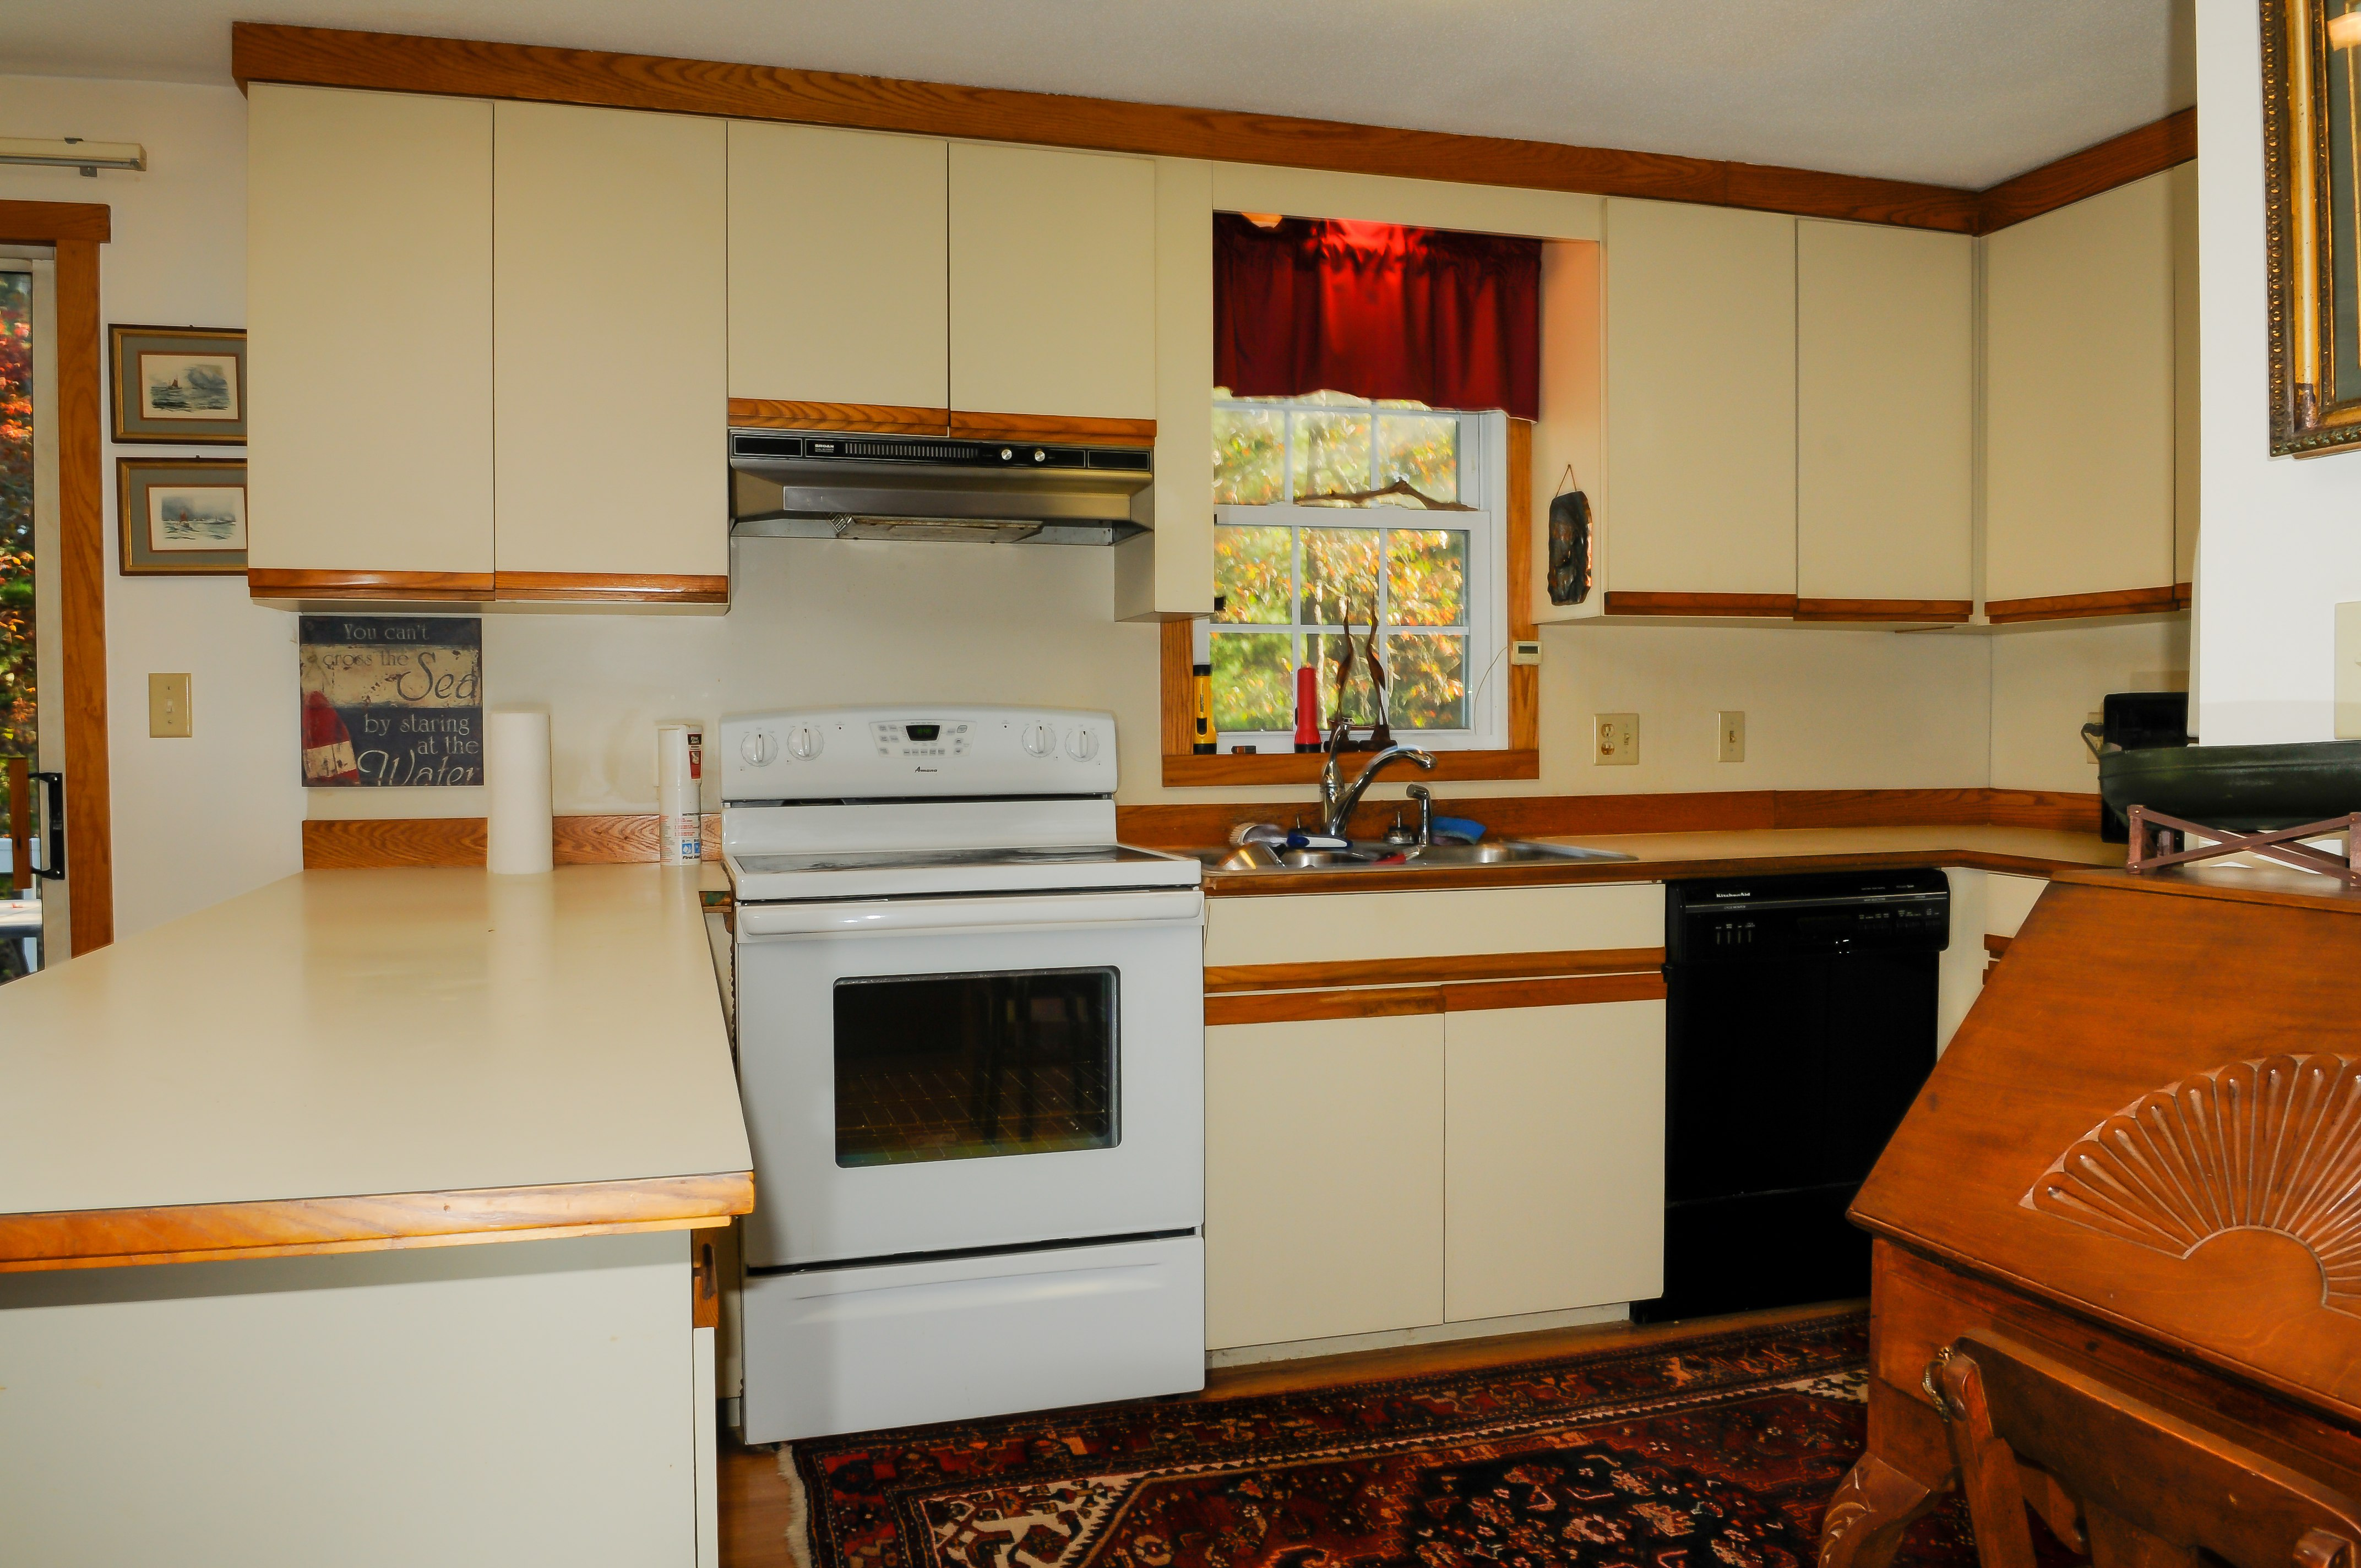 cabinet refacing kitchen cabinet refinishing cabinet refacing Cabinet Refacing blank